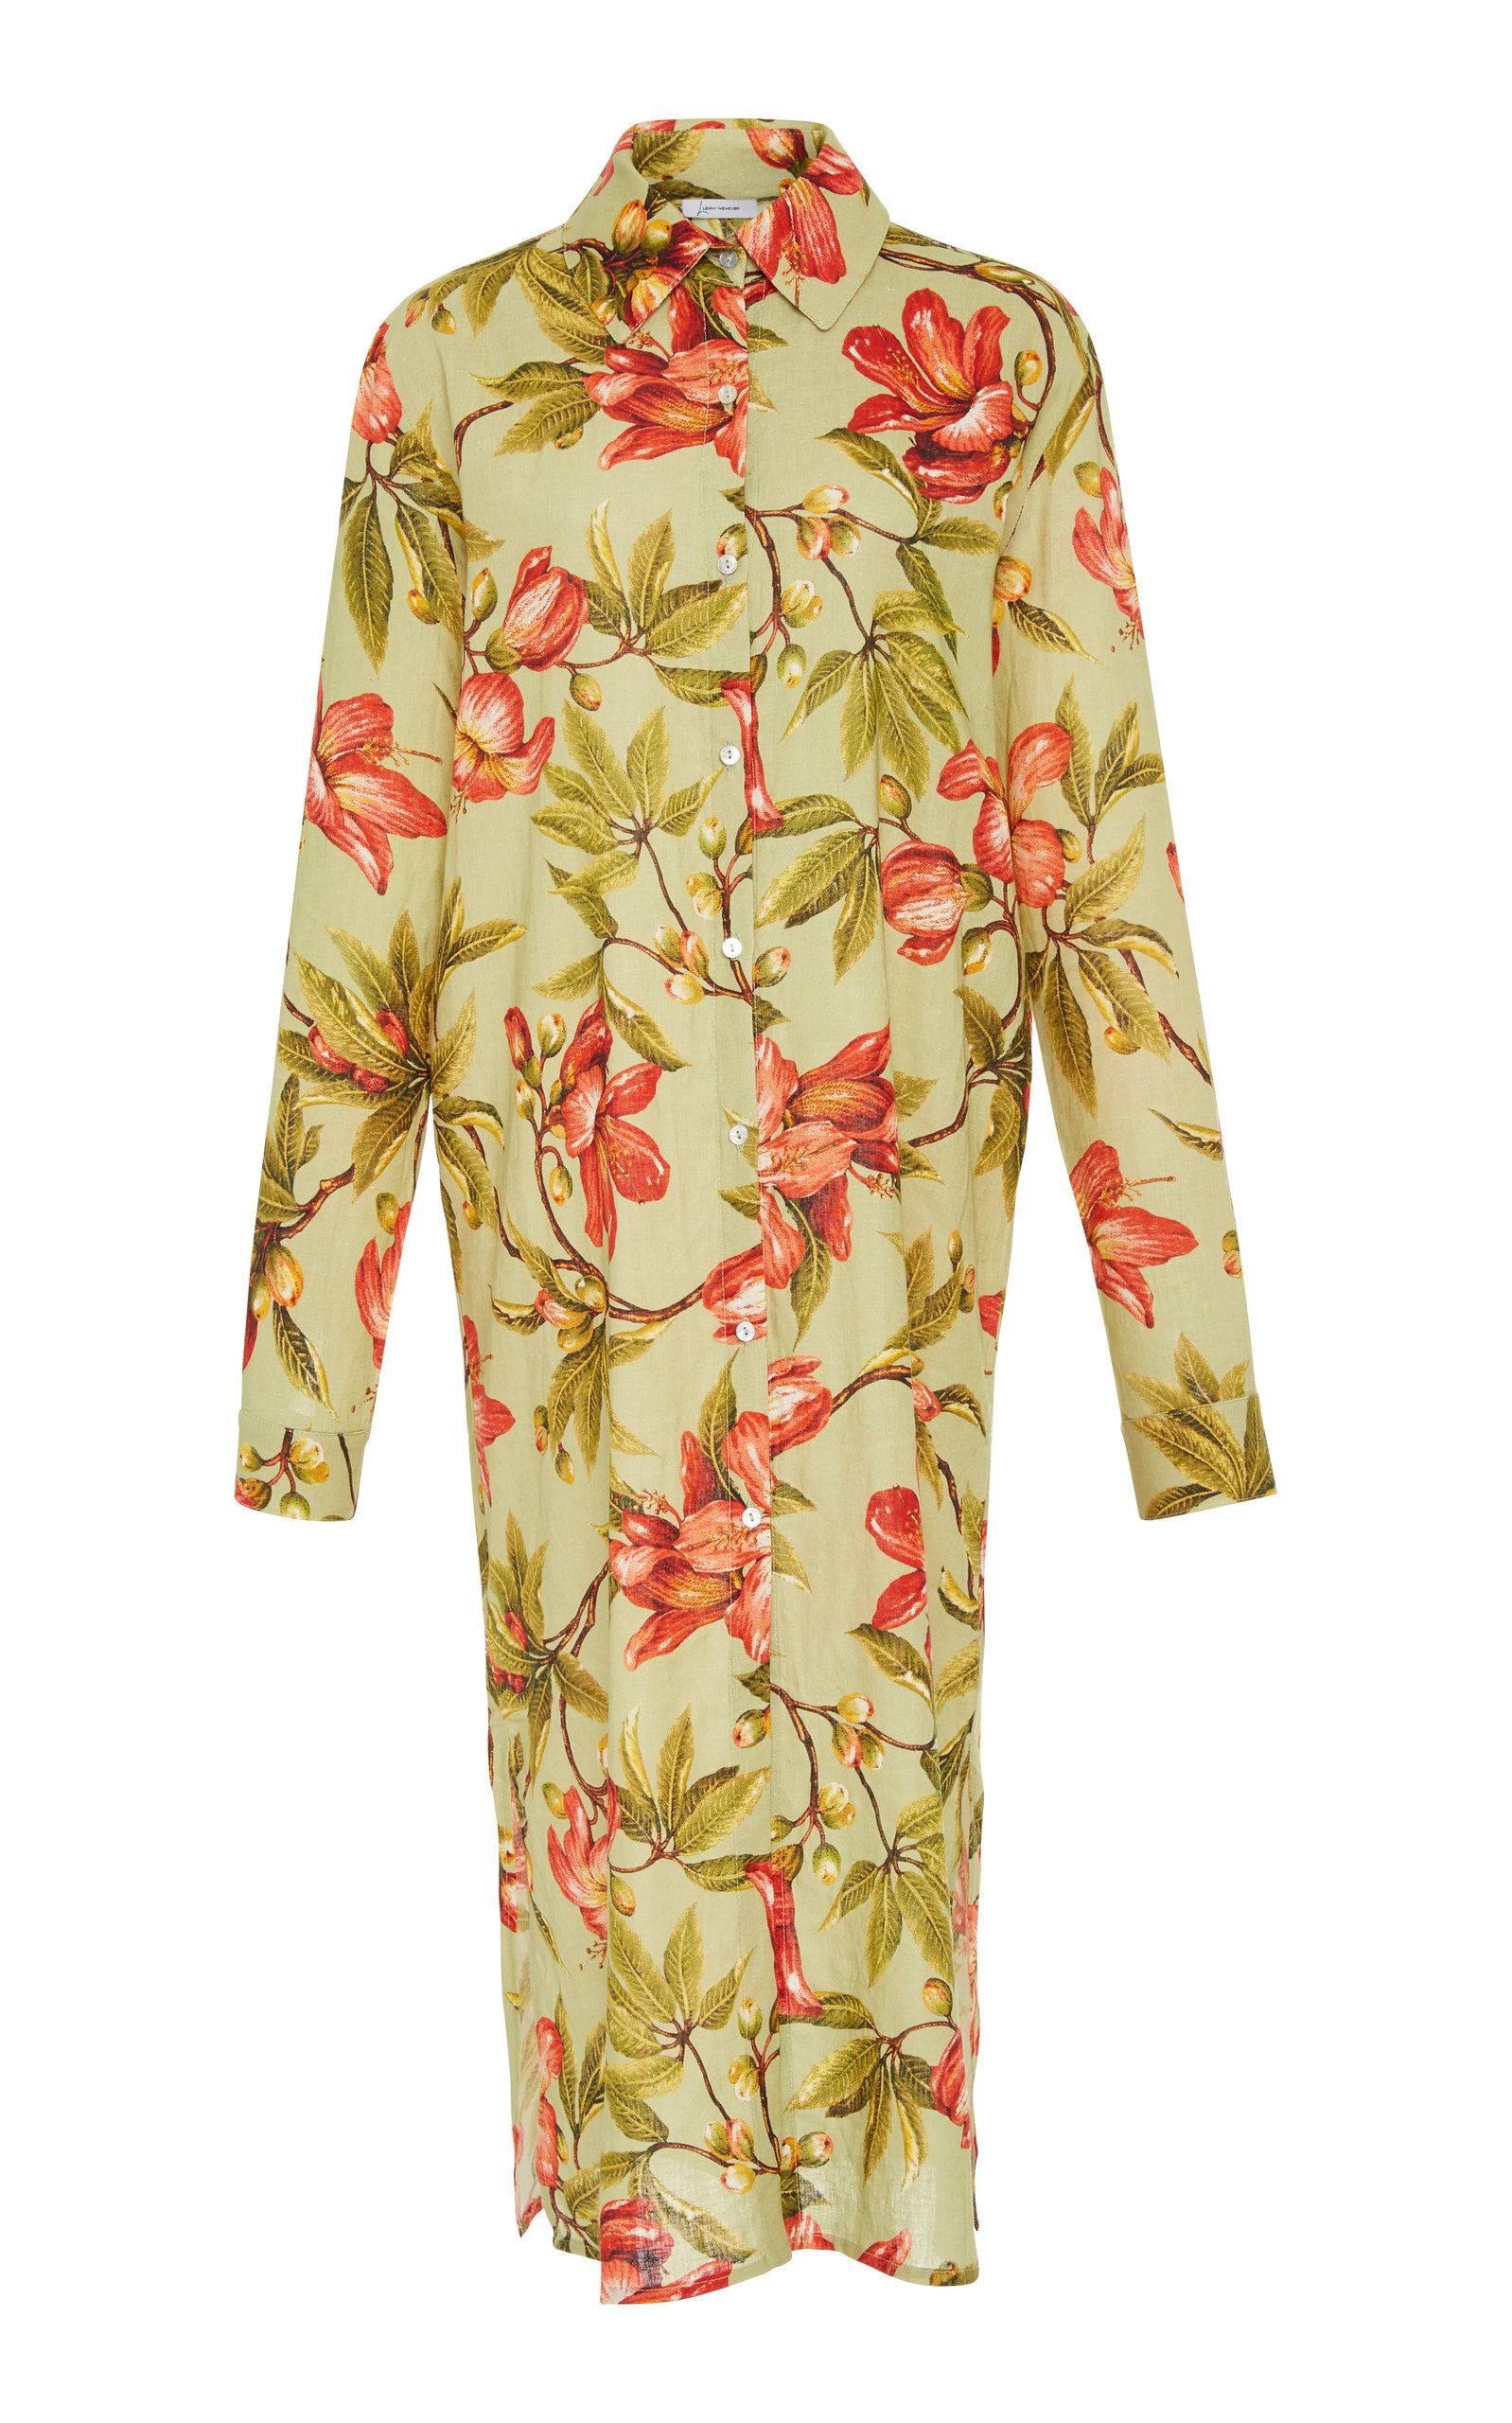 LENNY NIEMEYER Rustic Button-Down Shirt Dress in Floral